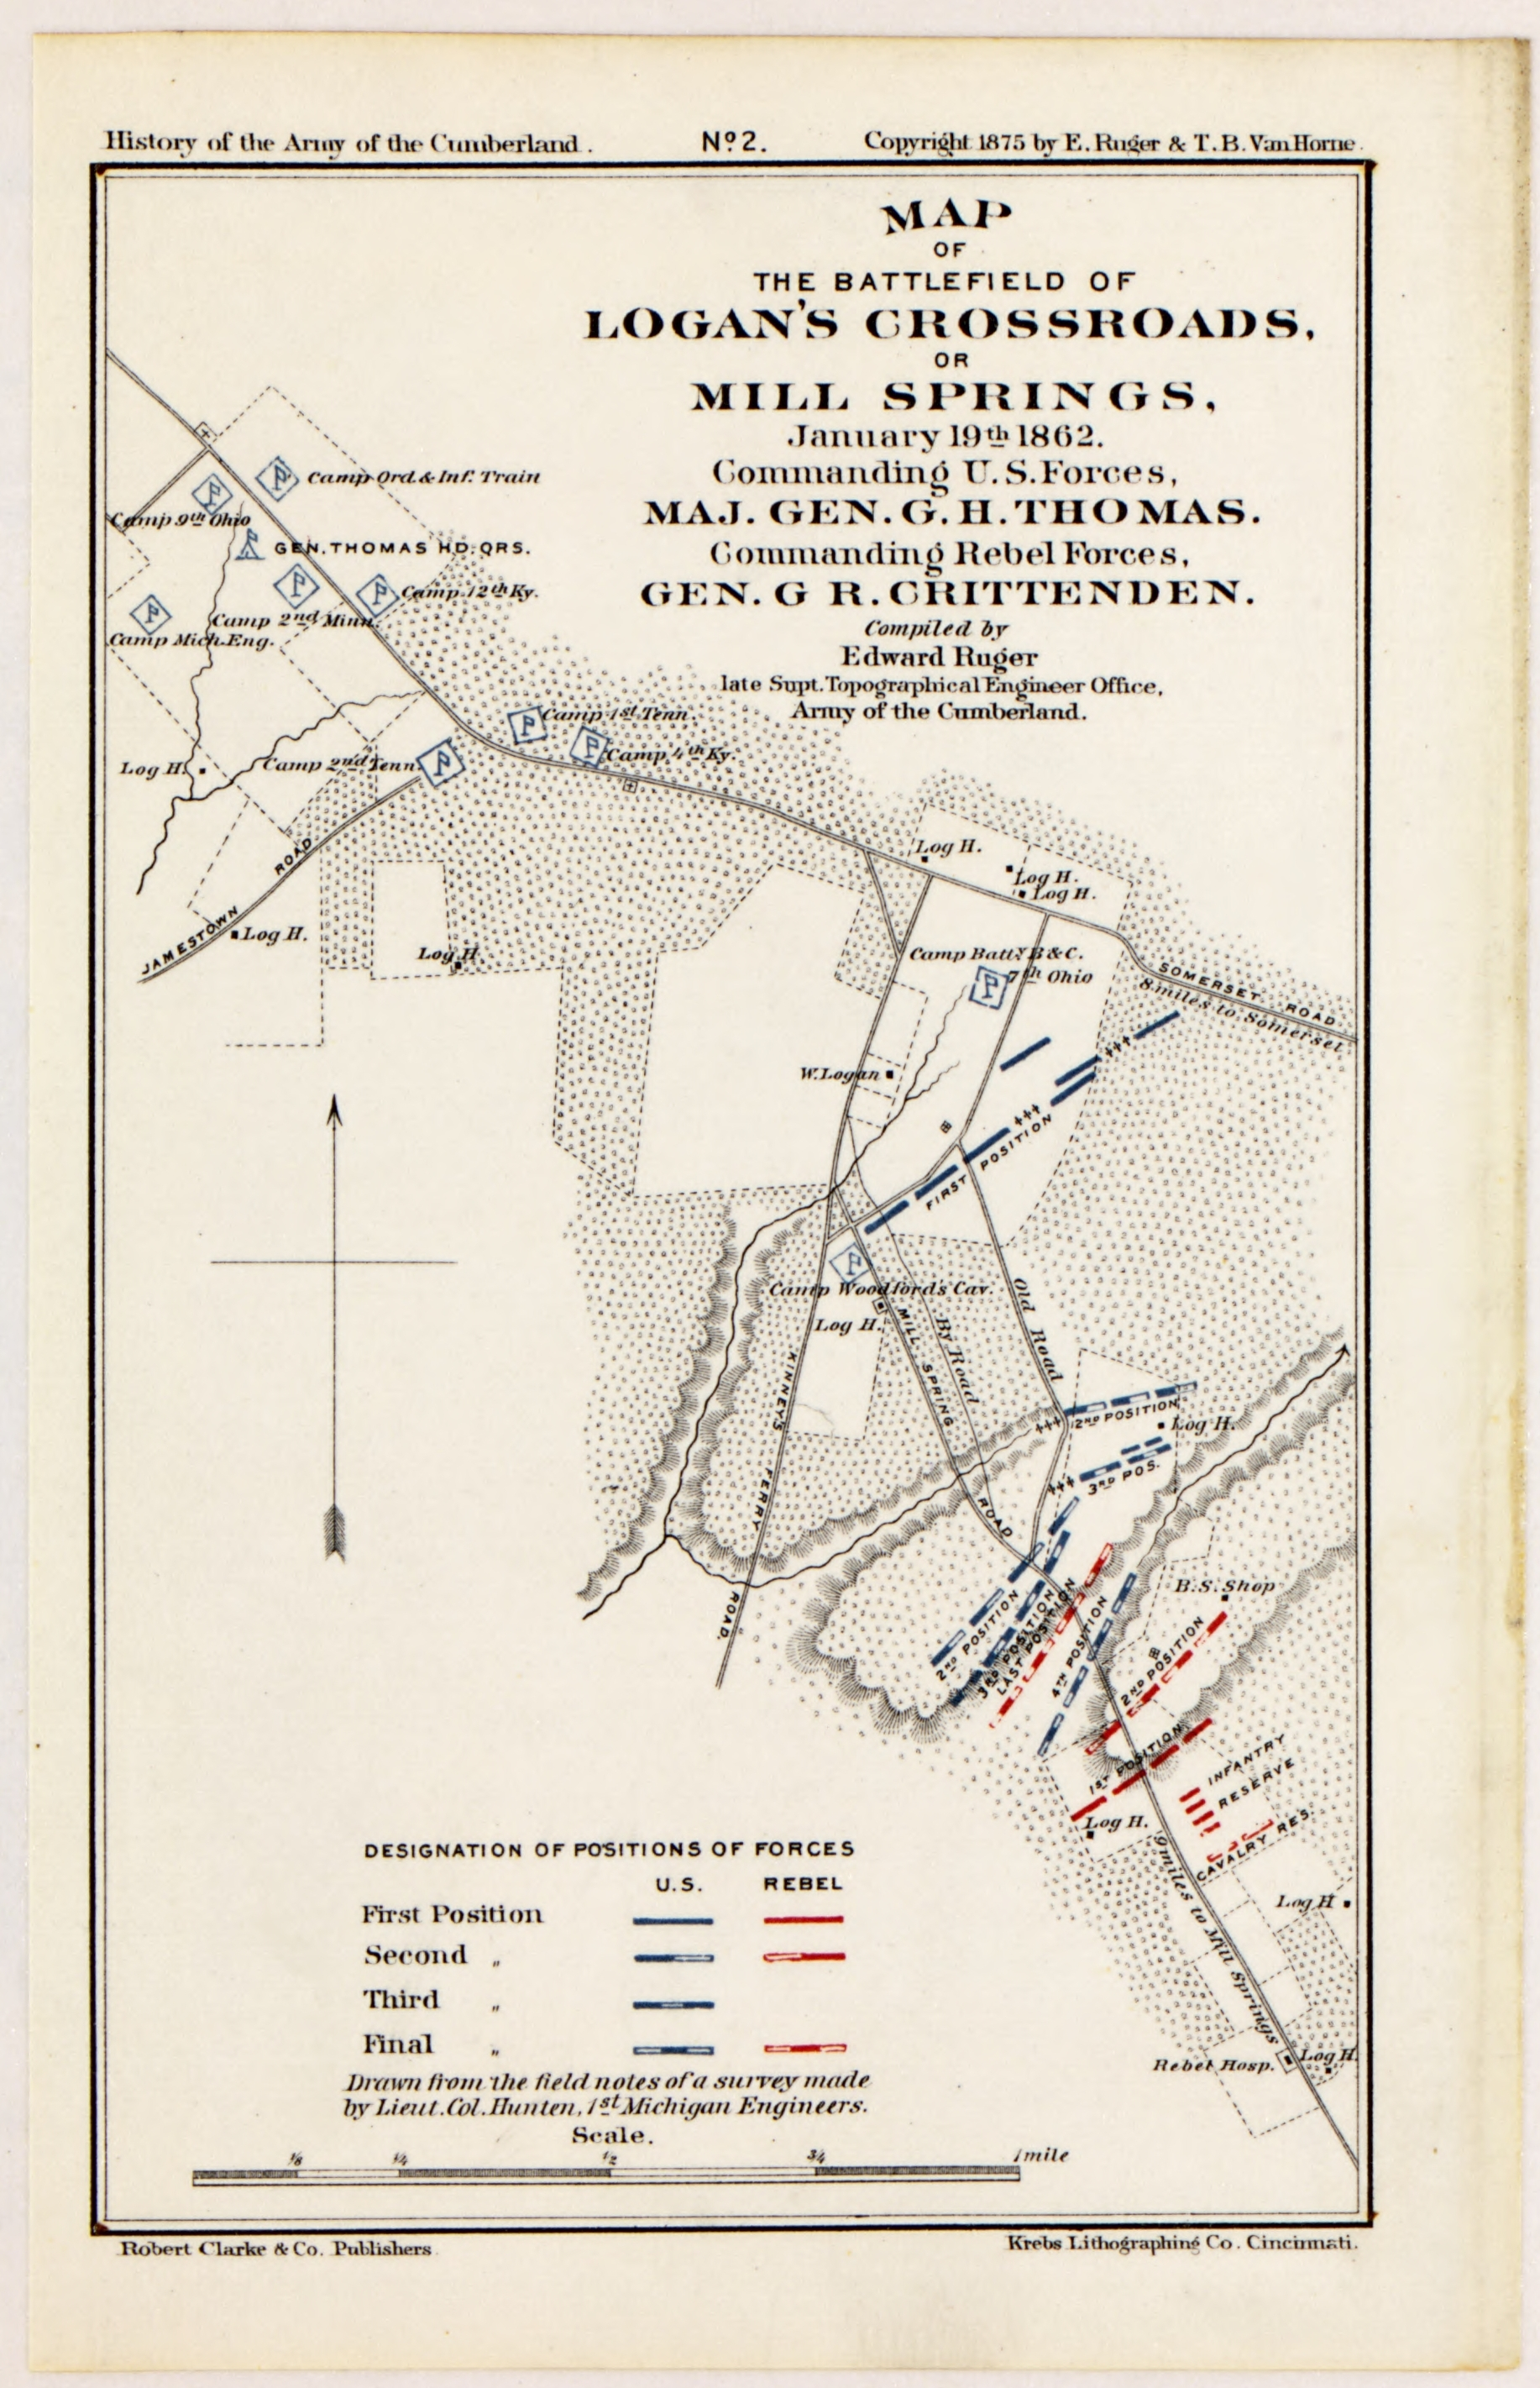 Book on CD 1875 Atlas Maps from the History of the Army of the Cumberland